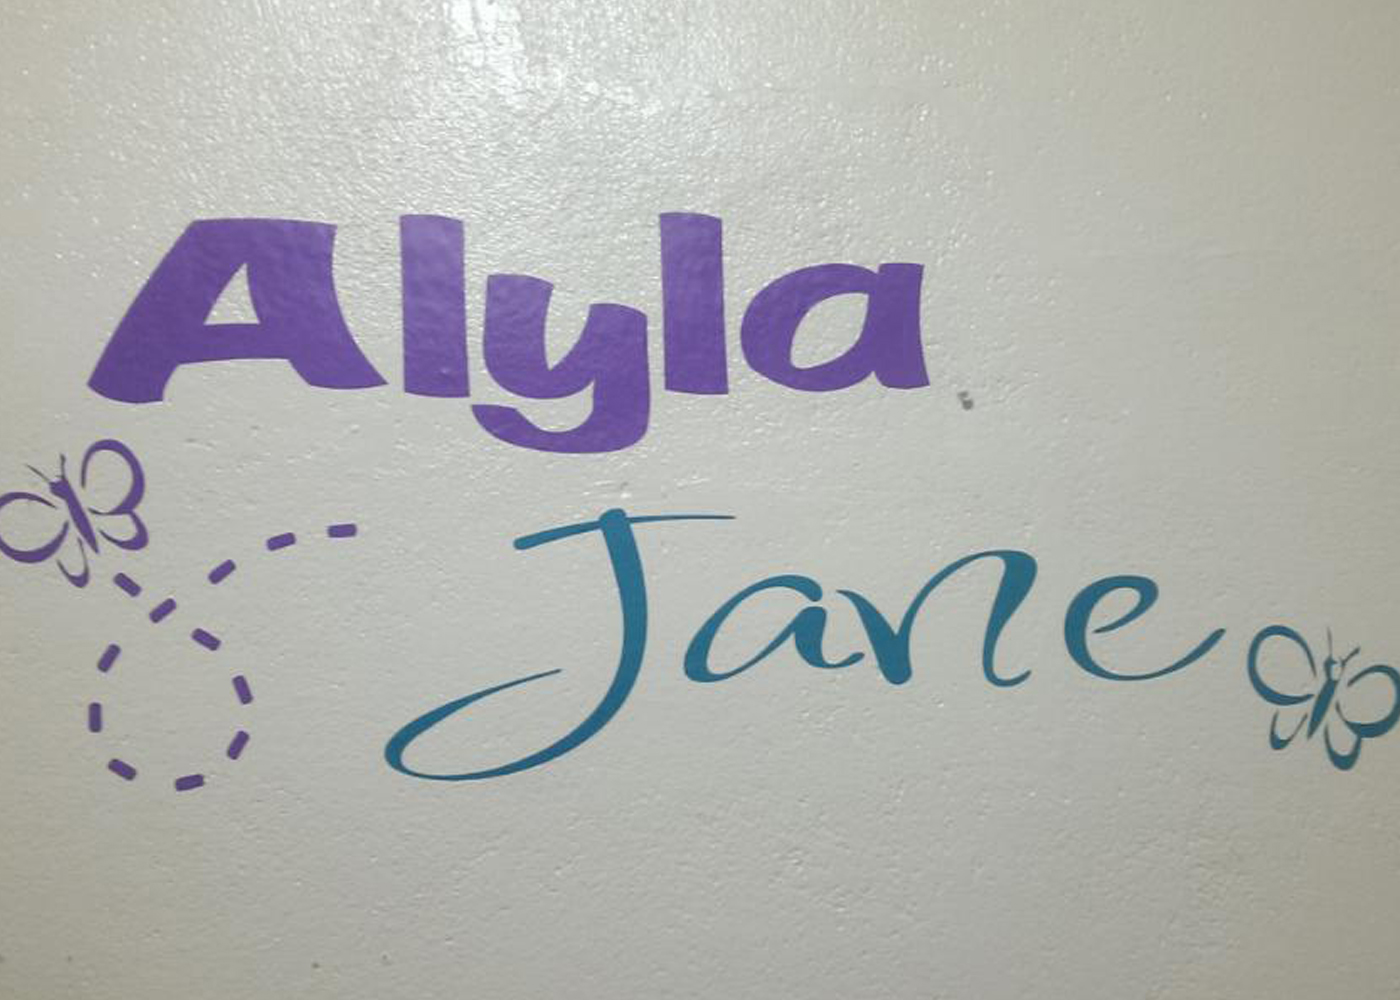 wall-name-vinyl-sticker-2-color-12x36.jpg